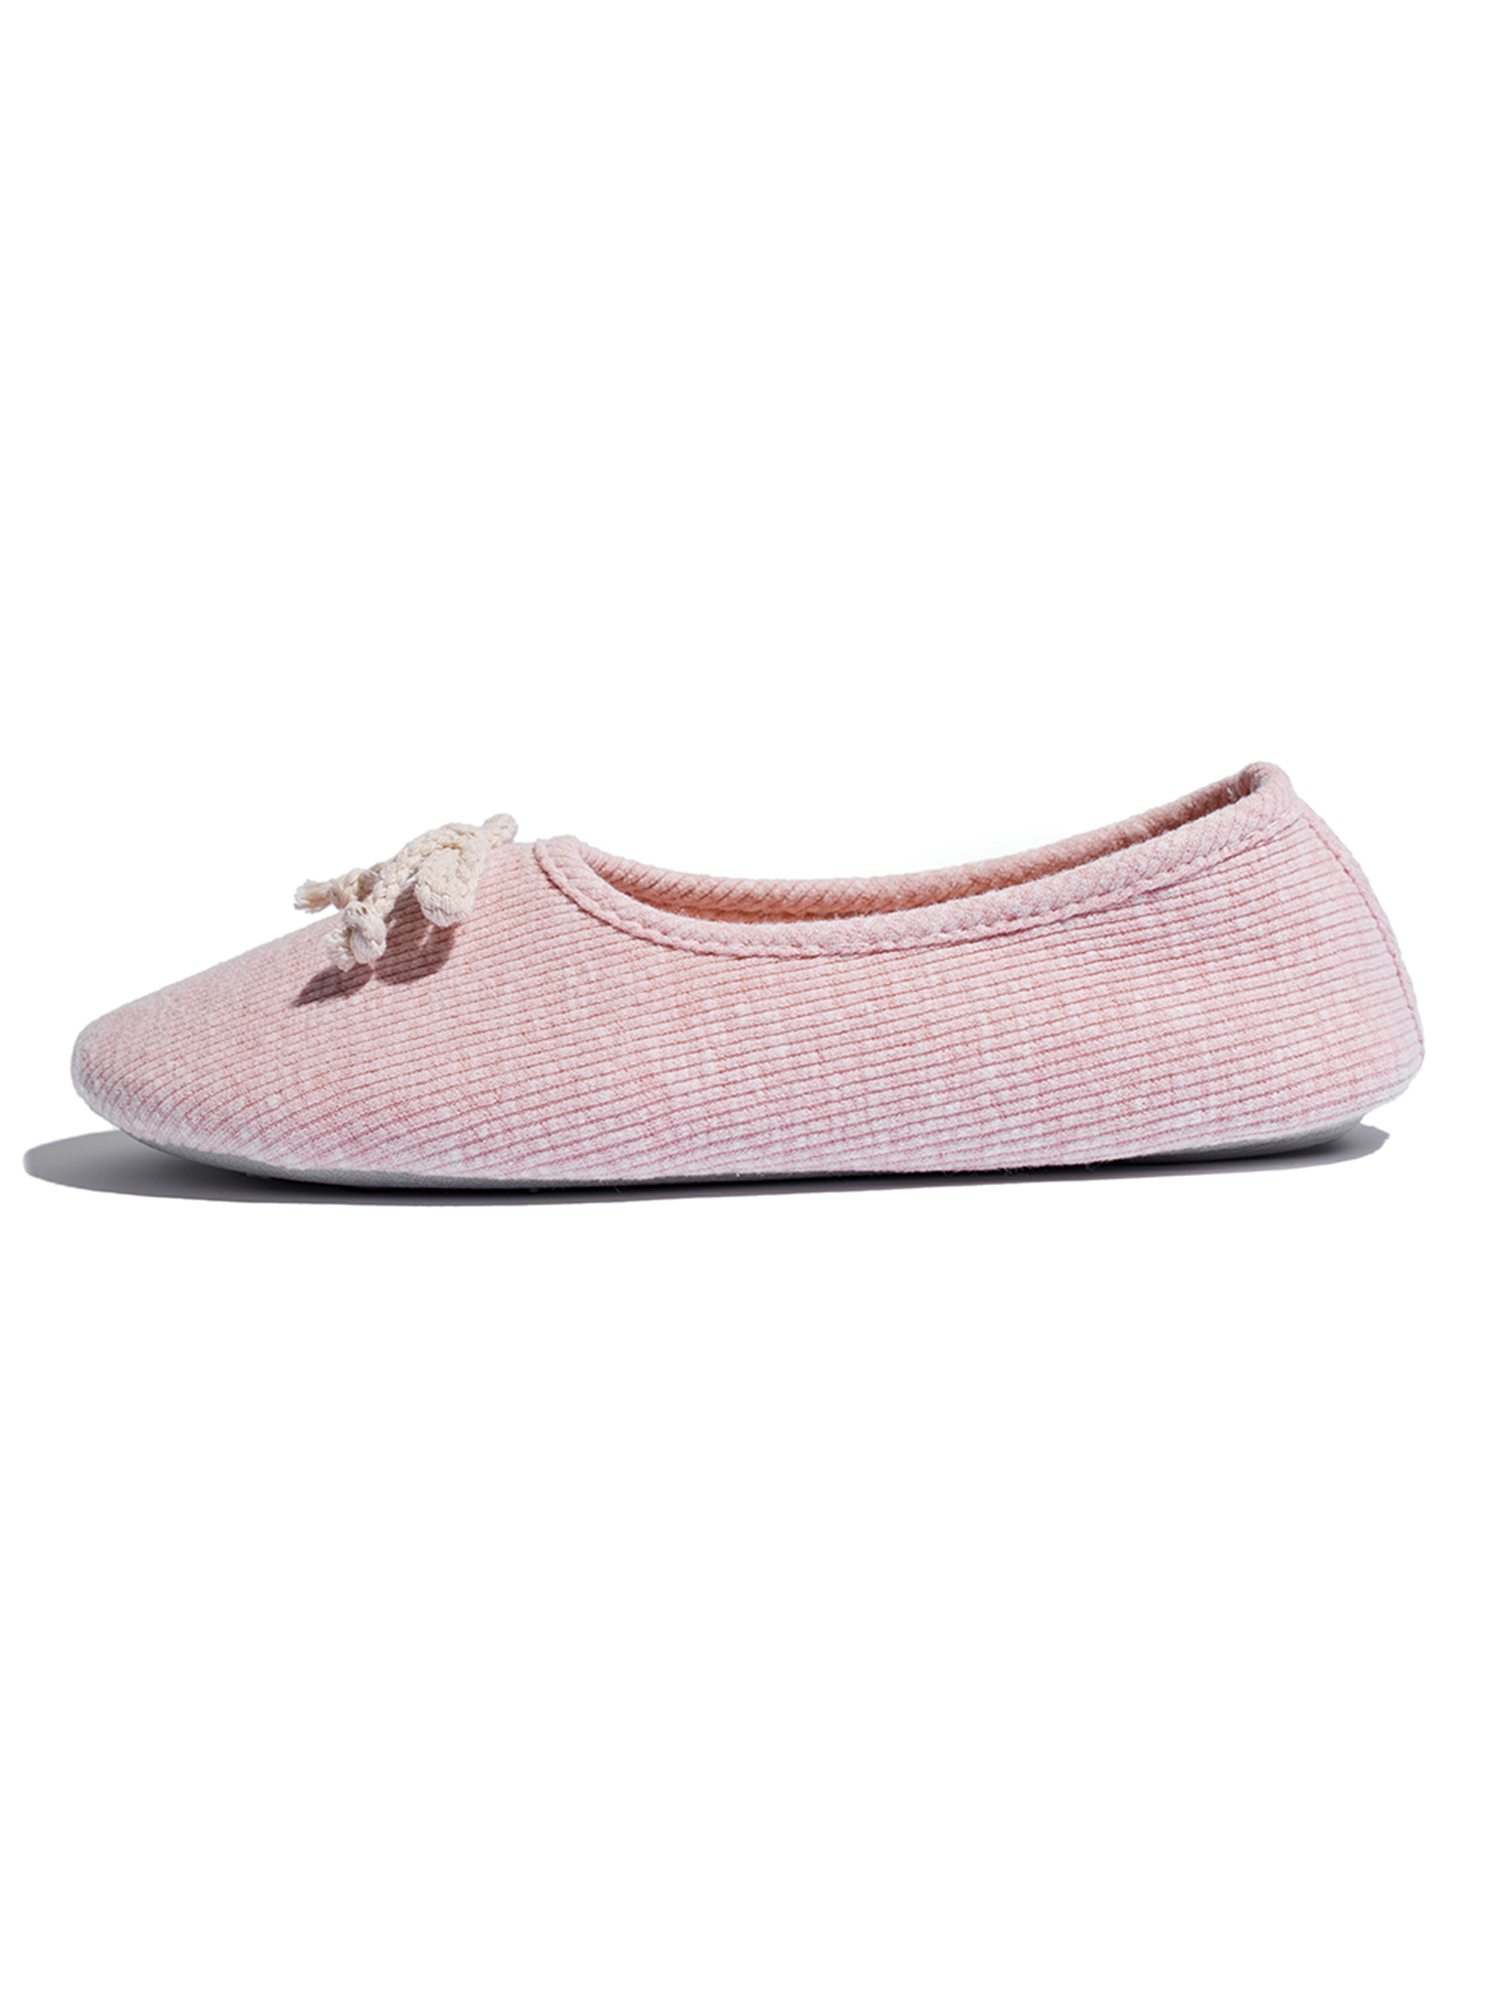 Small Train Toy Christmas Cute Winter Cotton House Slippers Flat Indoor Slip Room Shoes Slipper For Men Woman